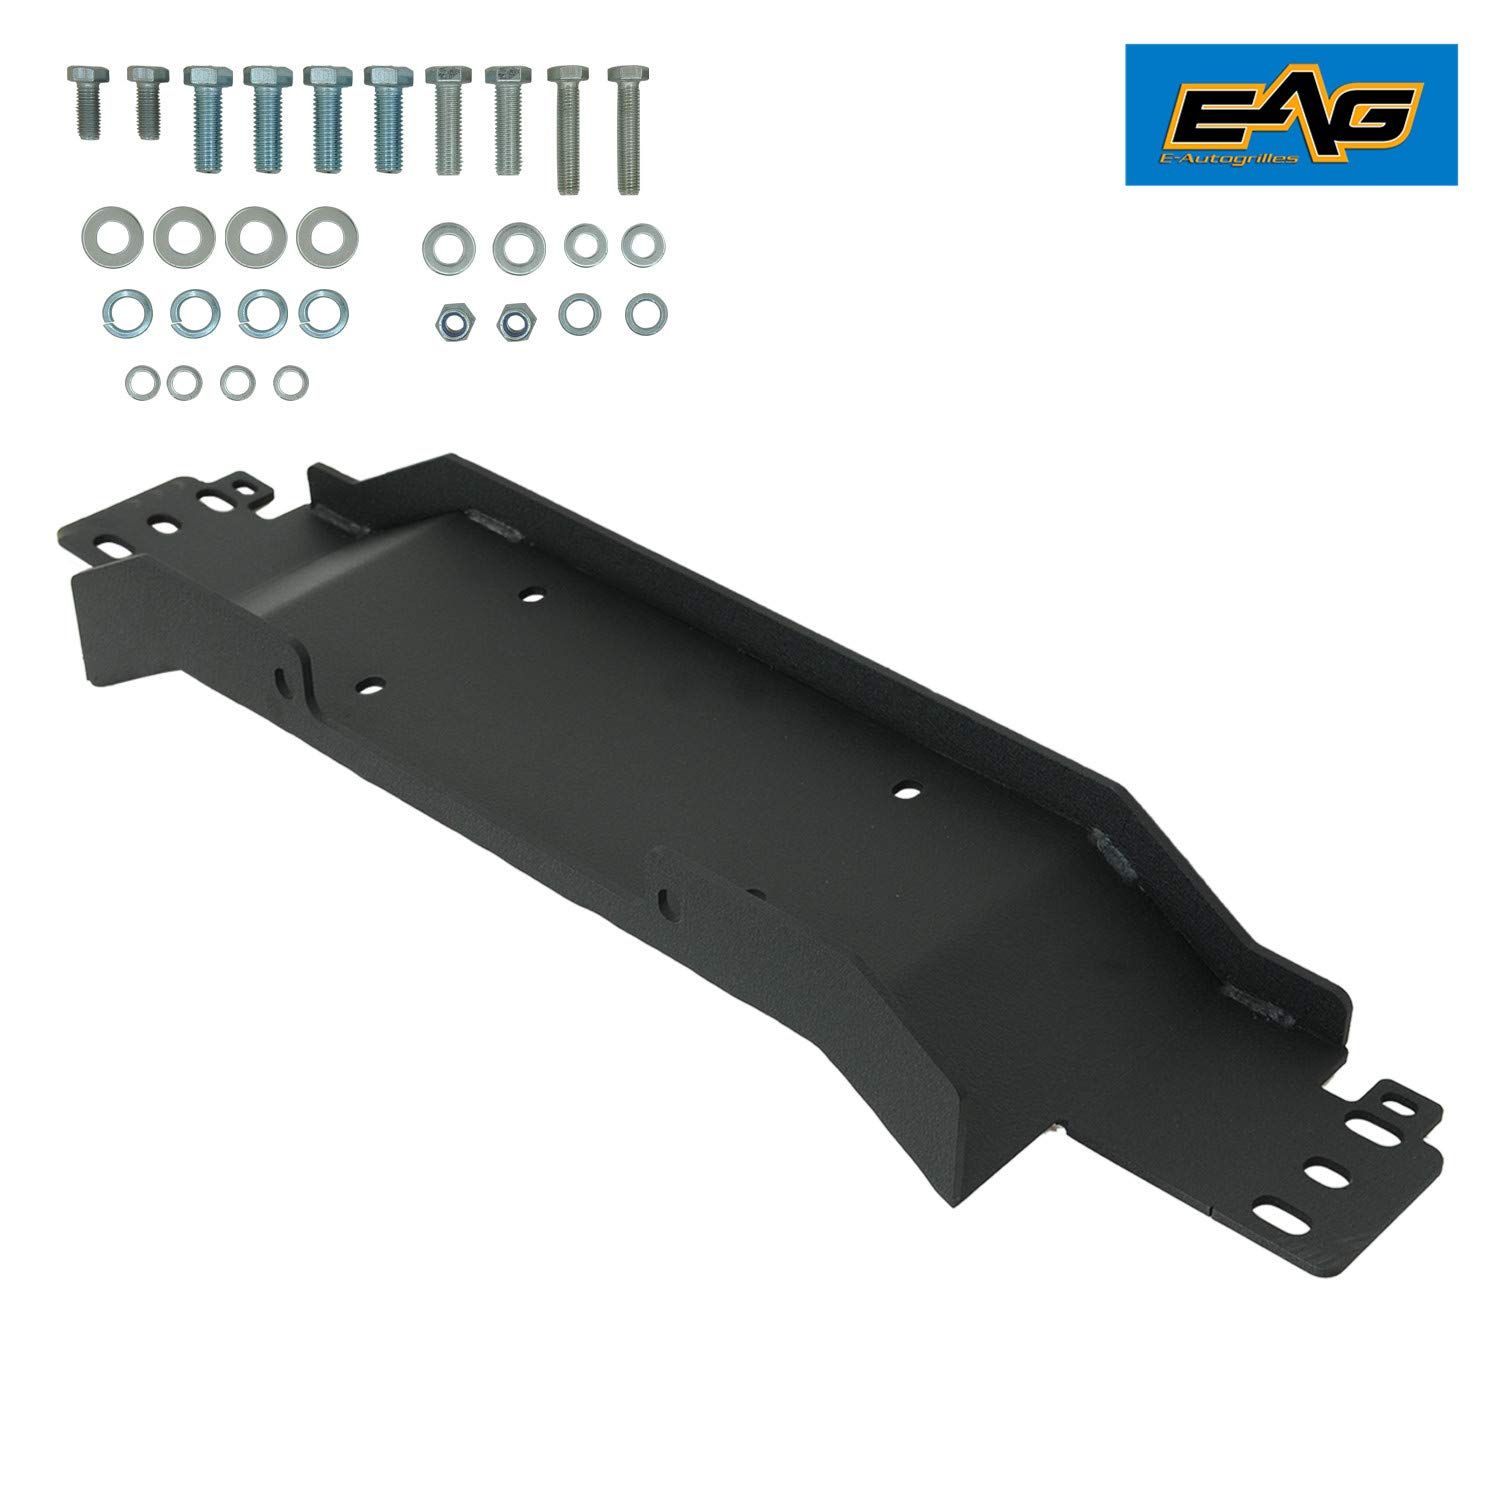 EAG Raised Winch Mounting Plate for 1987-2006 Jeep Wrangler TJ/YJ OE Factory Bumper